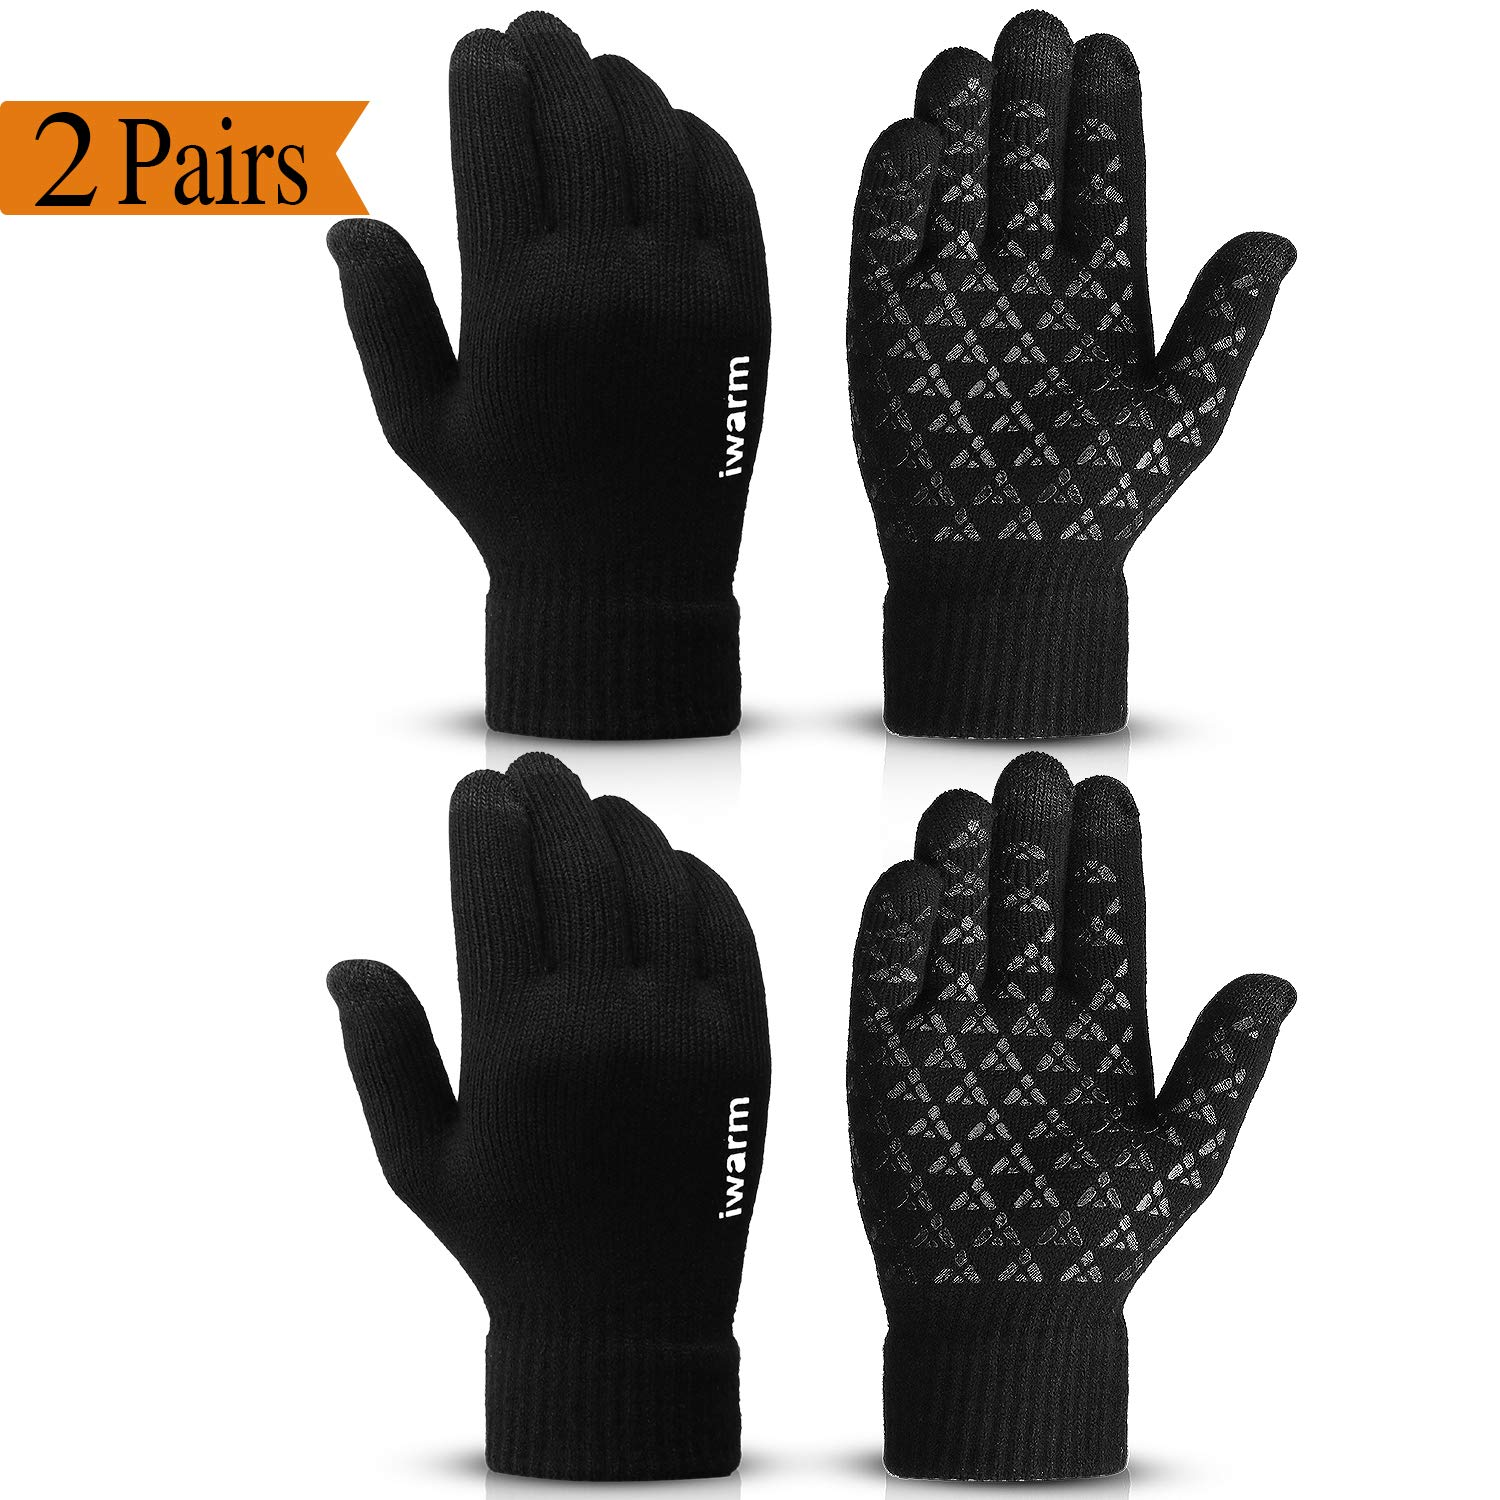 COOYOO Winter Gloves for Women and Men Touchscreen Gloves,Knit Wool, Anti-Slip Silicone Gel - Elastic Cuff - Thermal Soft Wool Lining - Stretchy Material by COOYOO